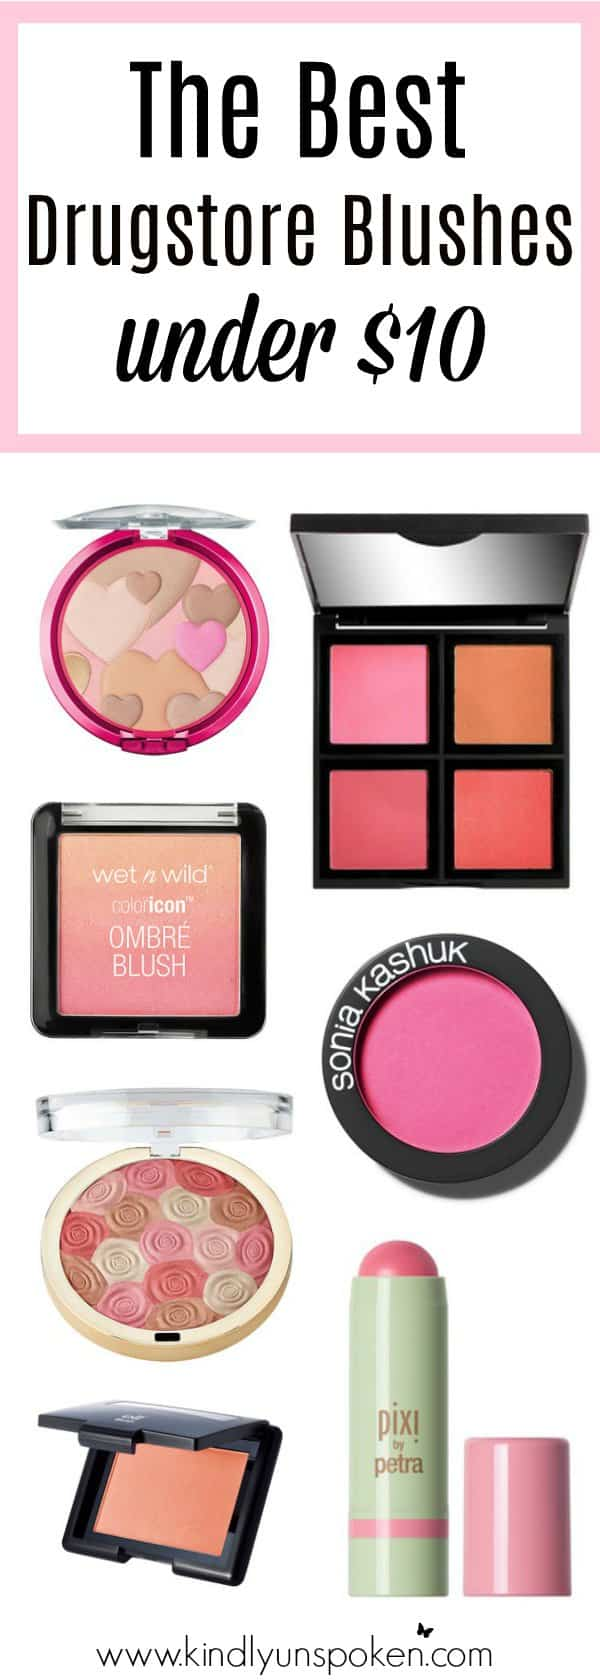 Today I'm sharing The Best Drugstore Blushes- all of which are under $10, are great quality, and will give you that perfect color and glow!